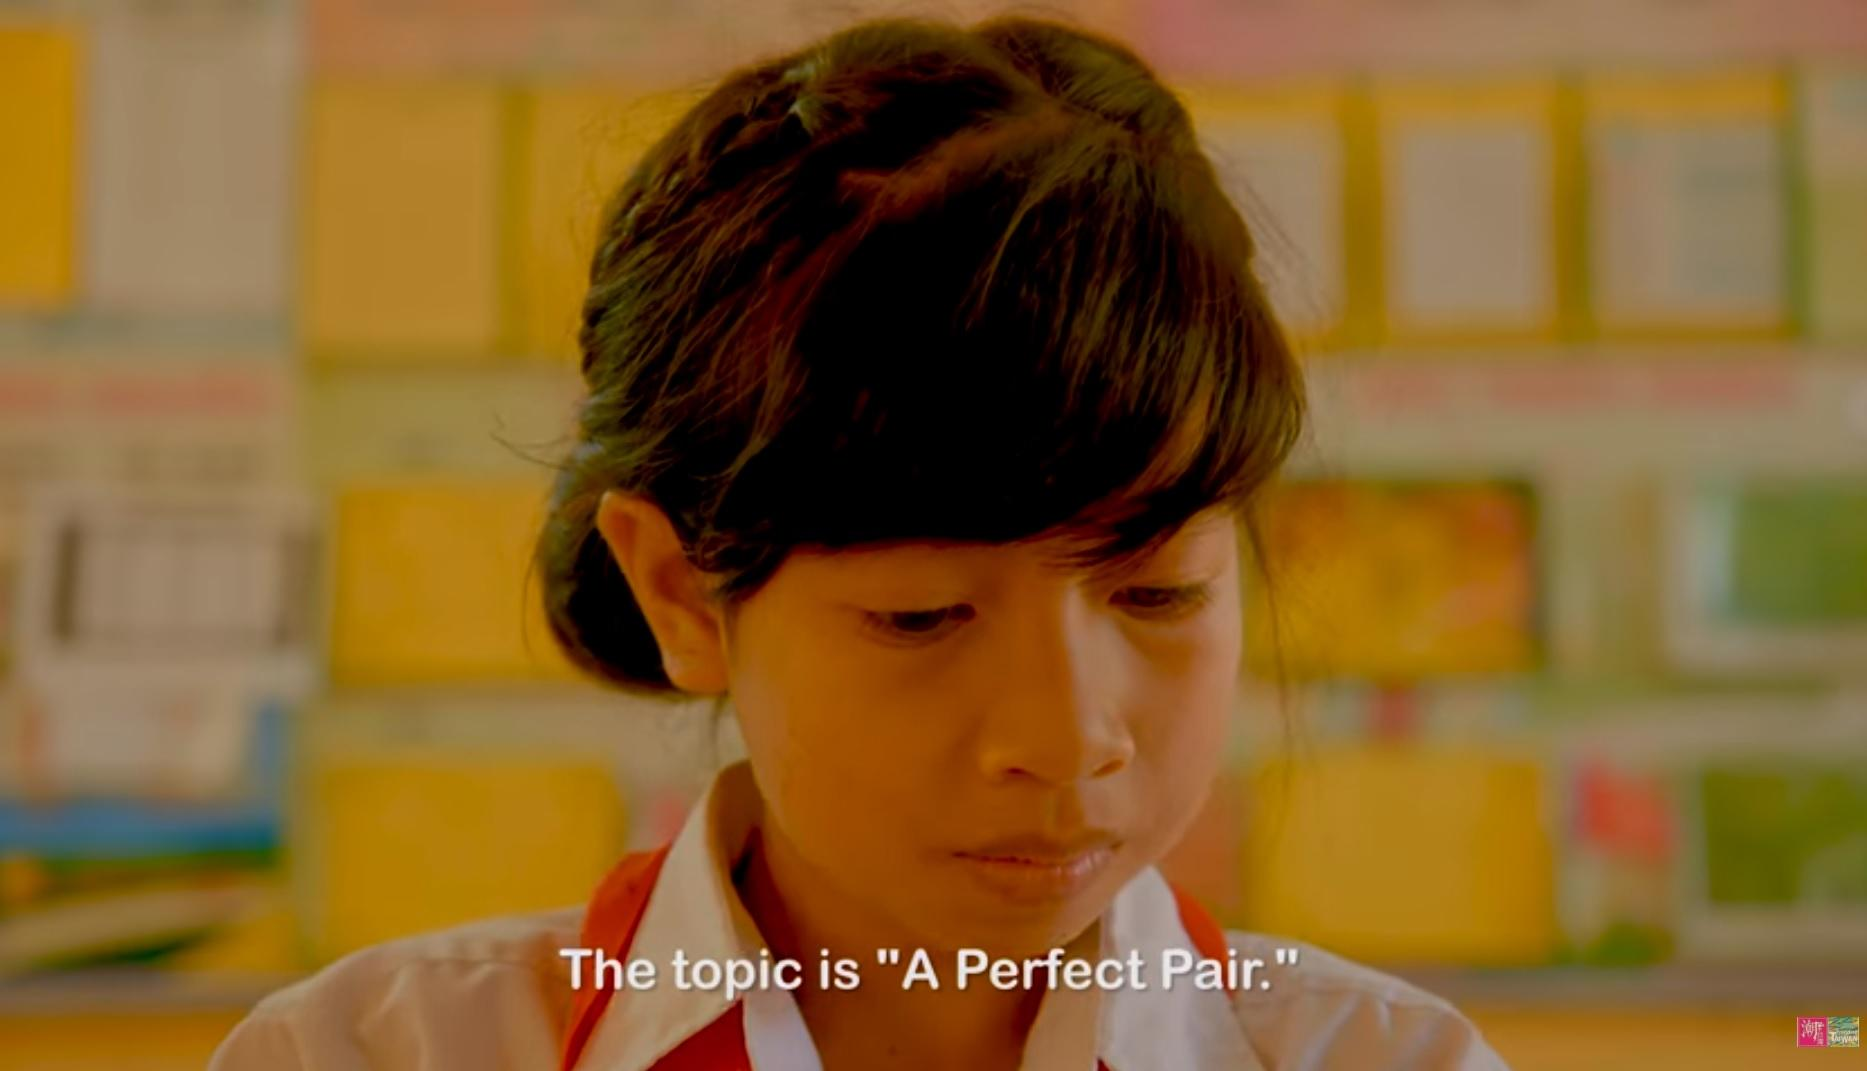 """A Perfect Pair""-A film based on a true story. Taiwan: An important partner in global health security"